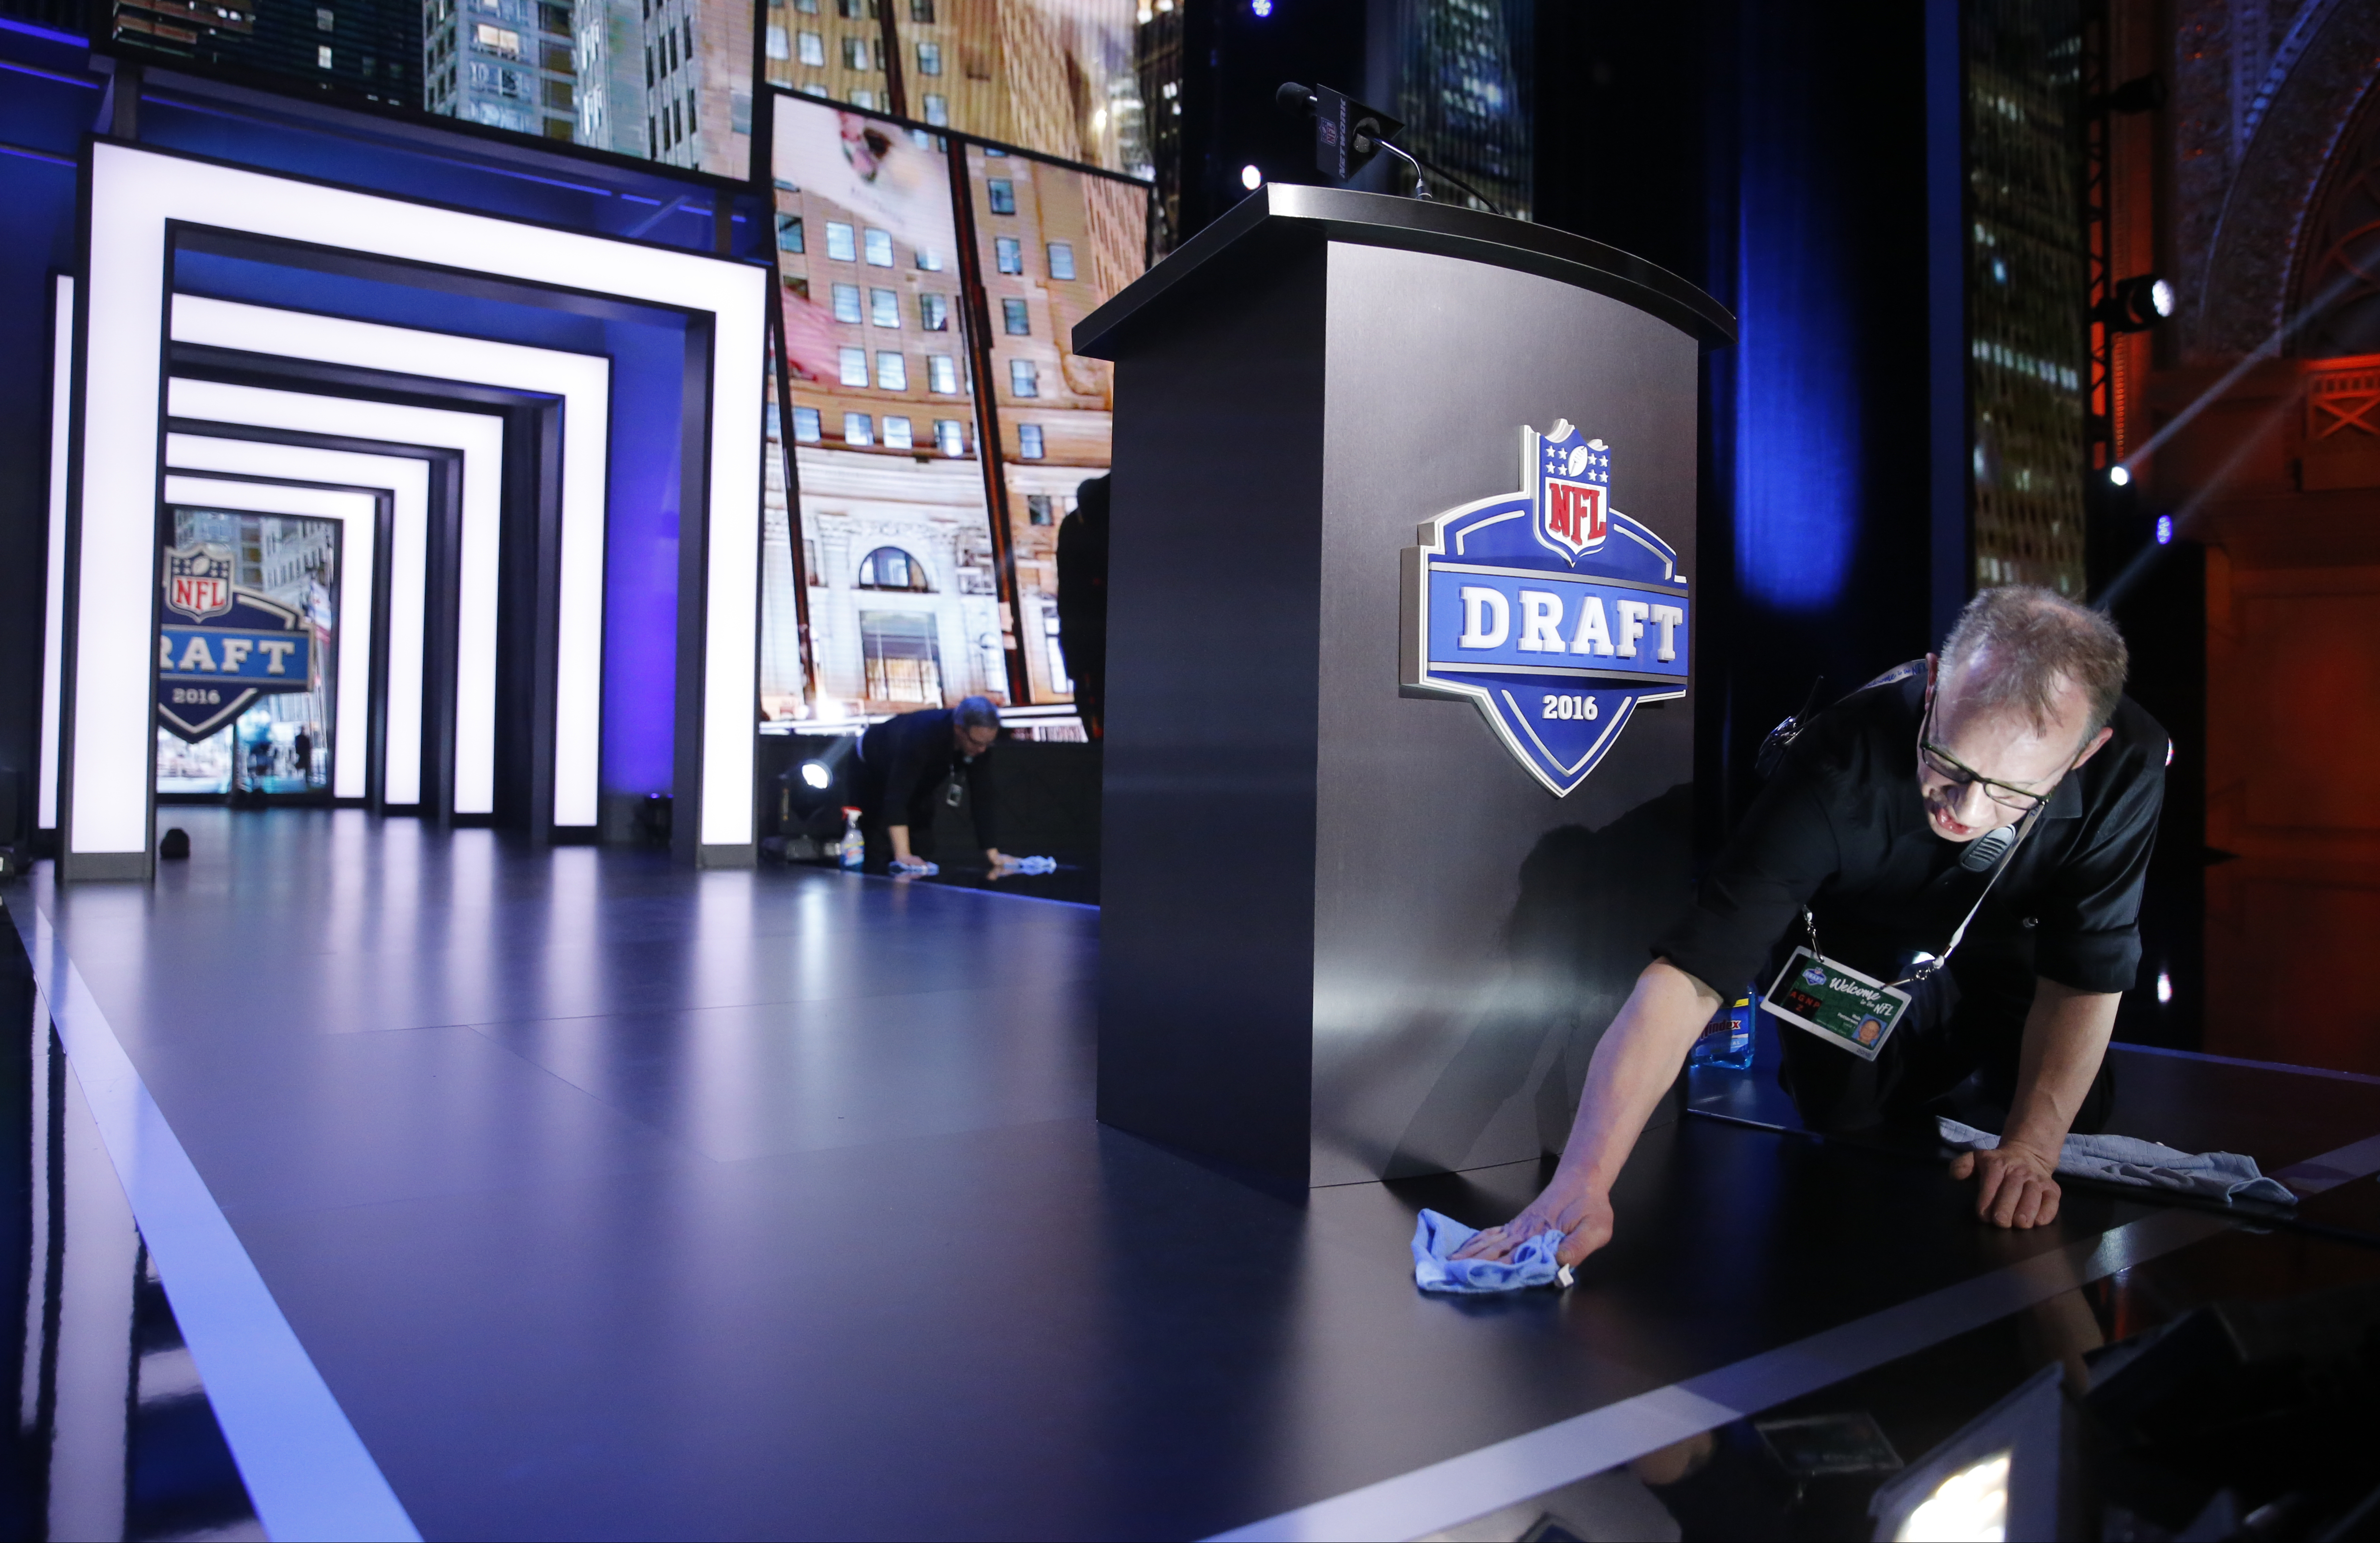 Robert Patterson prepare the stage at Auditorium Theater of Roosevelt University for the second and third rounds of the 2016 NFL football draft, Friday, April 29, 2016, in Chicago. (AP Photo/Charles Rex Arbogast)